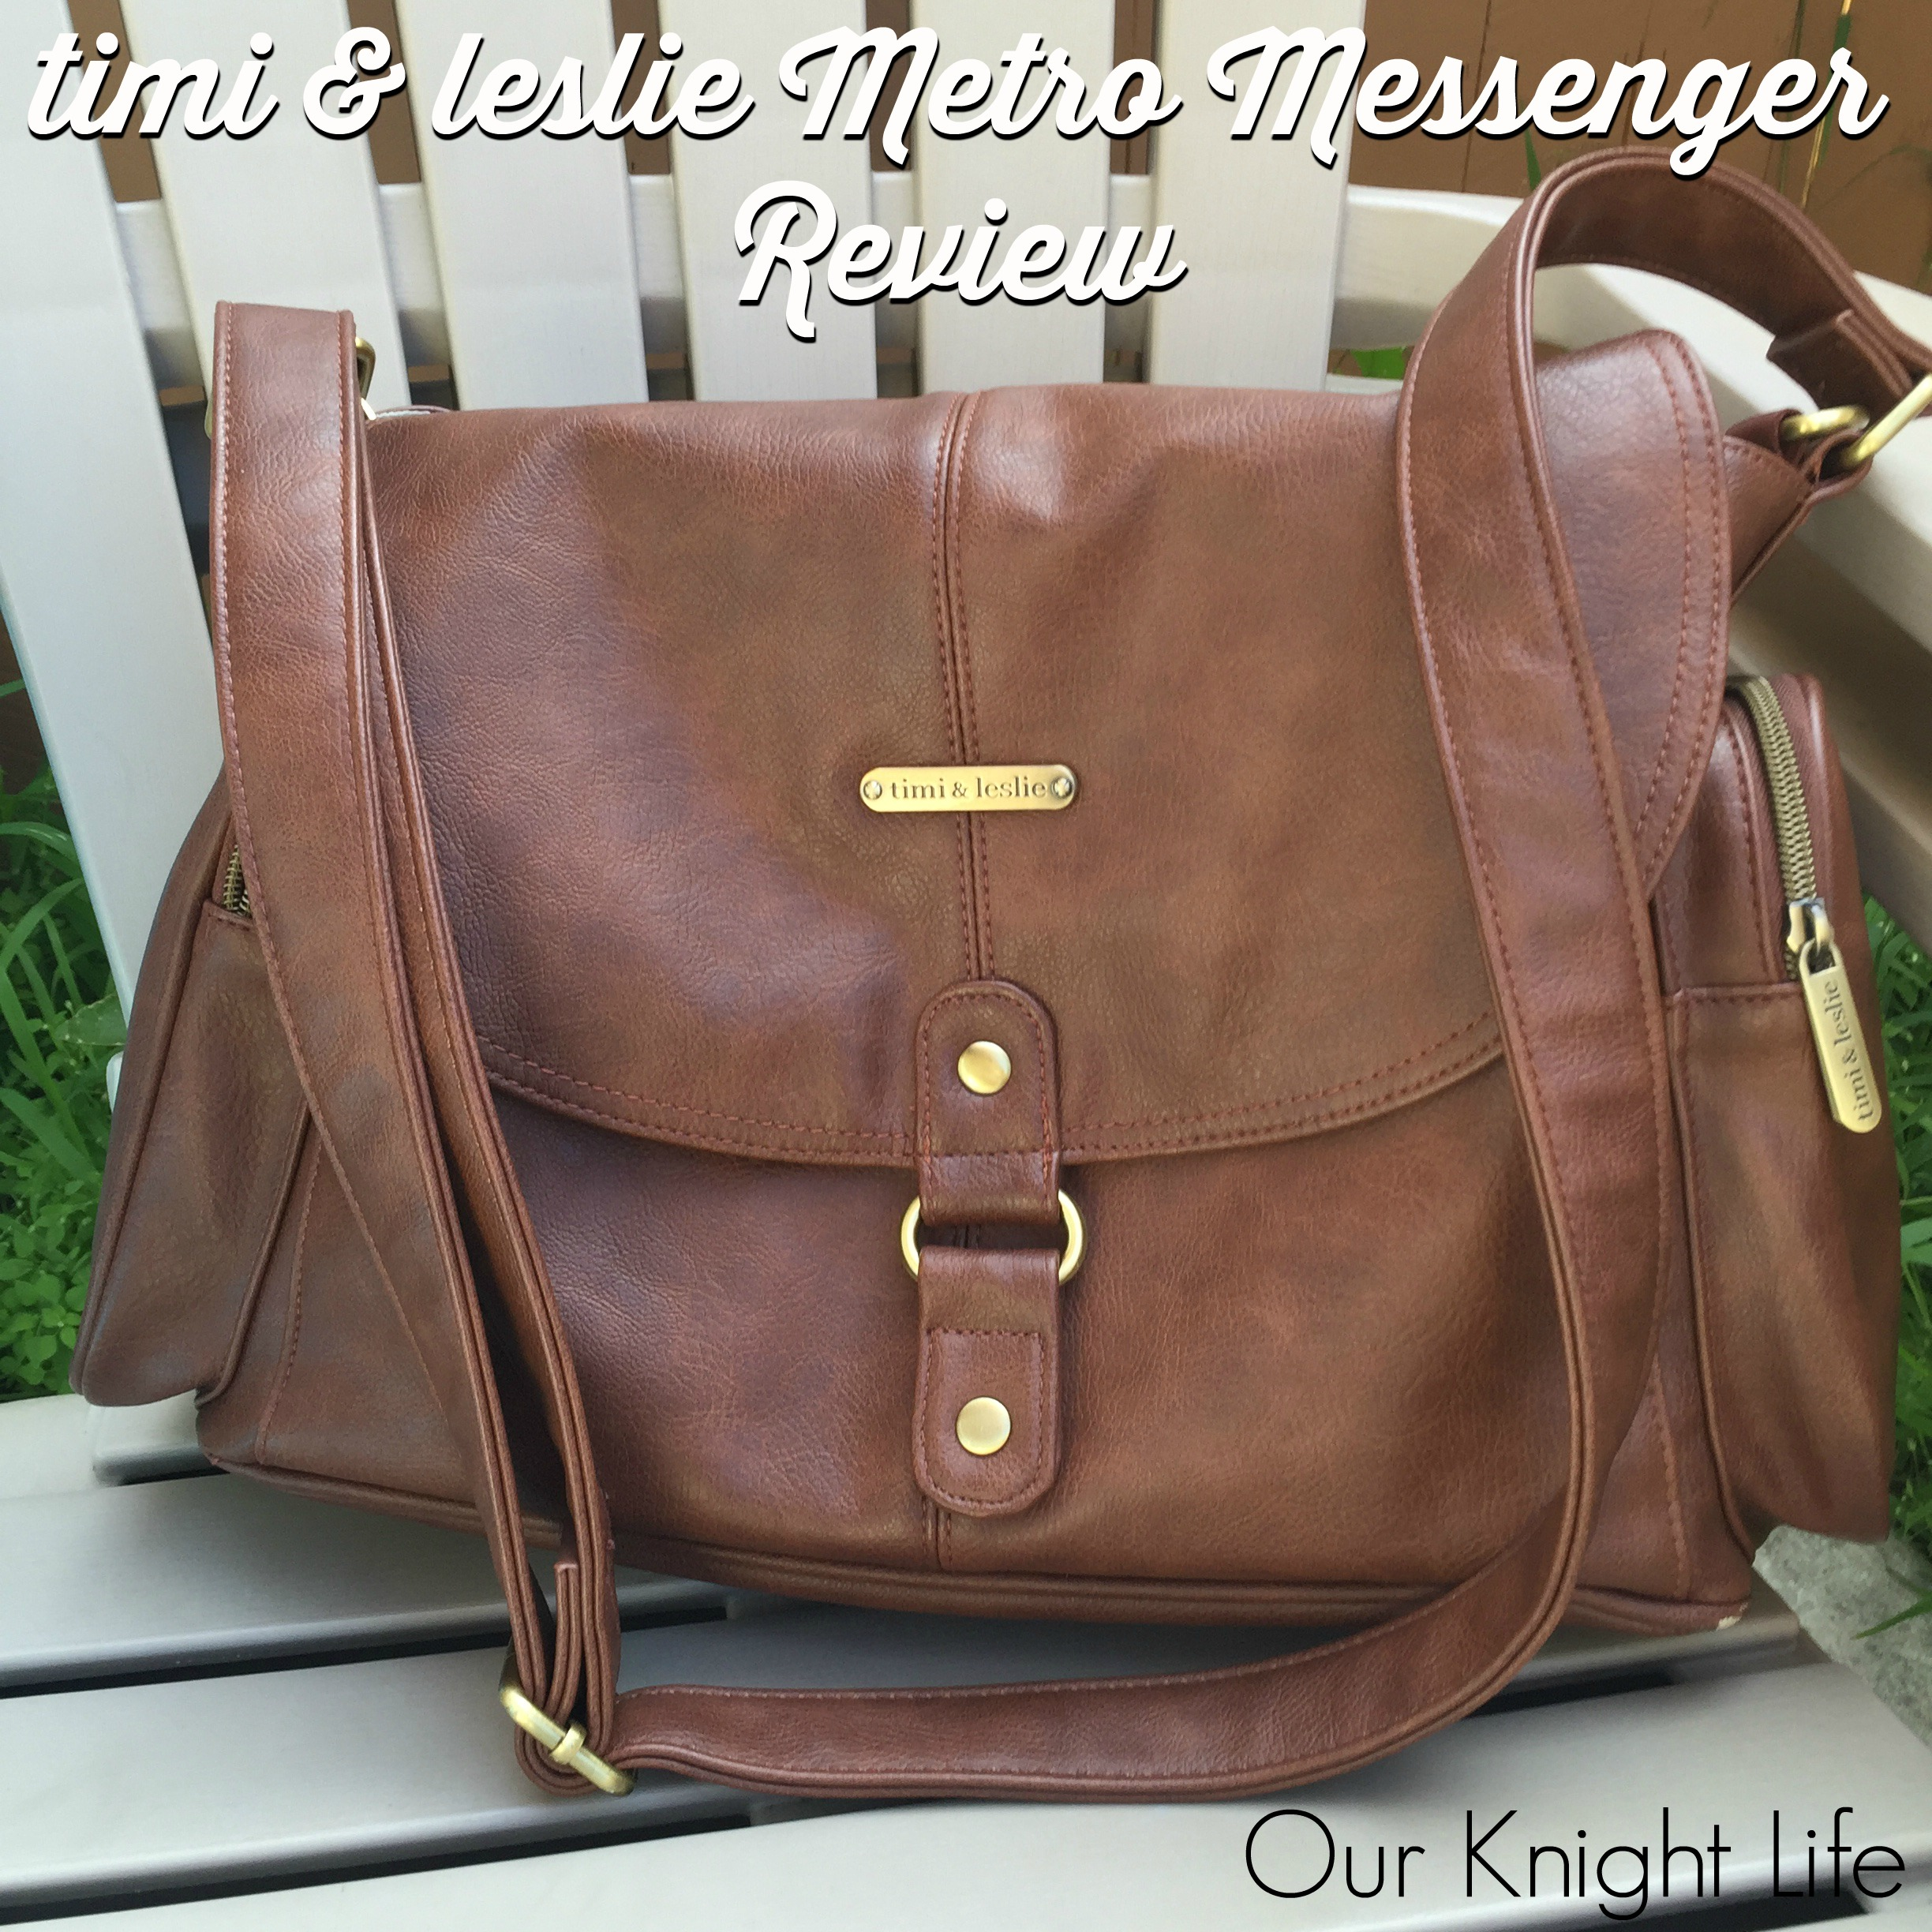 timi&leslie Metro Messenger Diaper Bag Review with Cloth Diapers